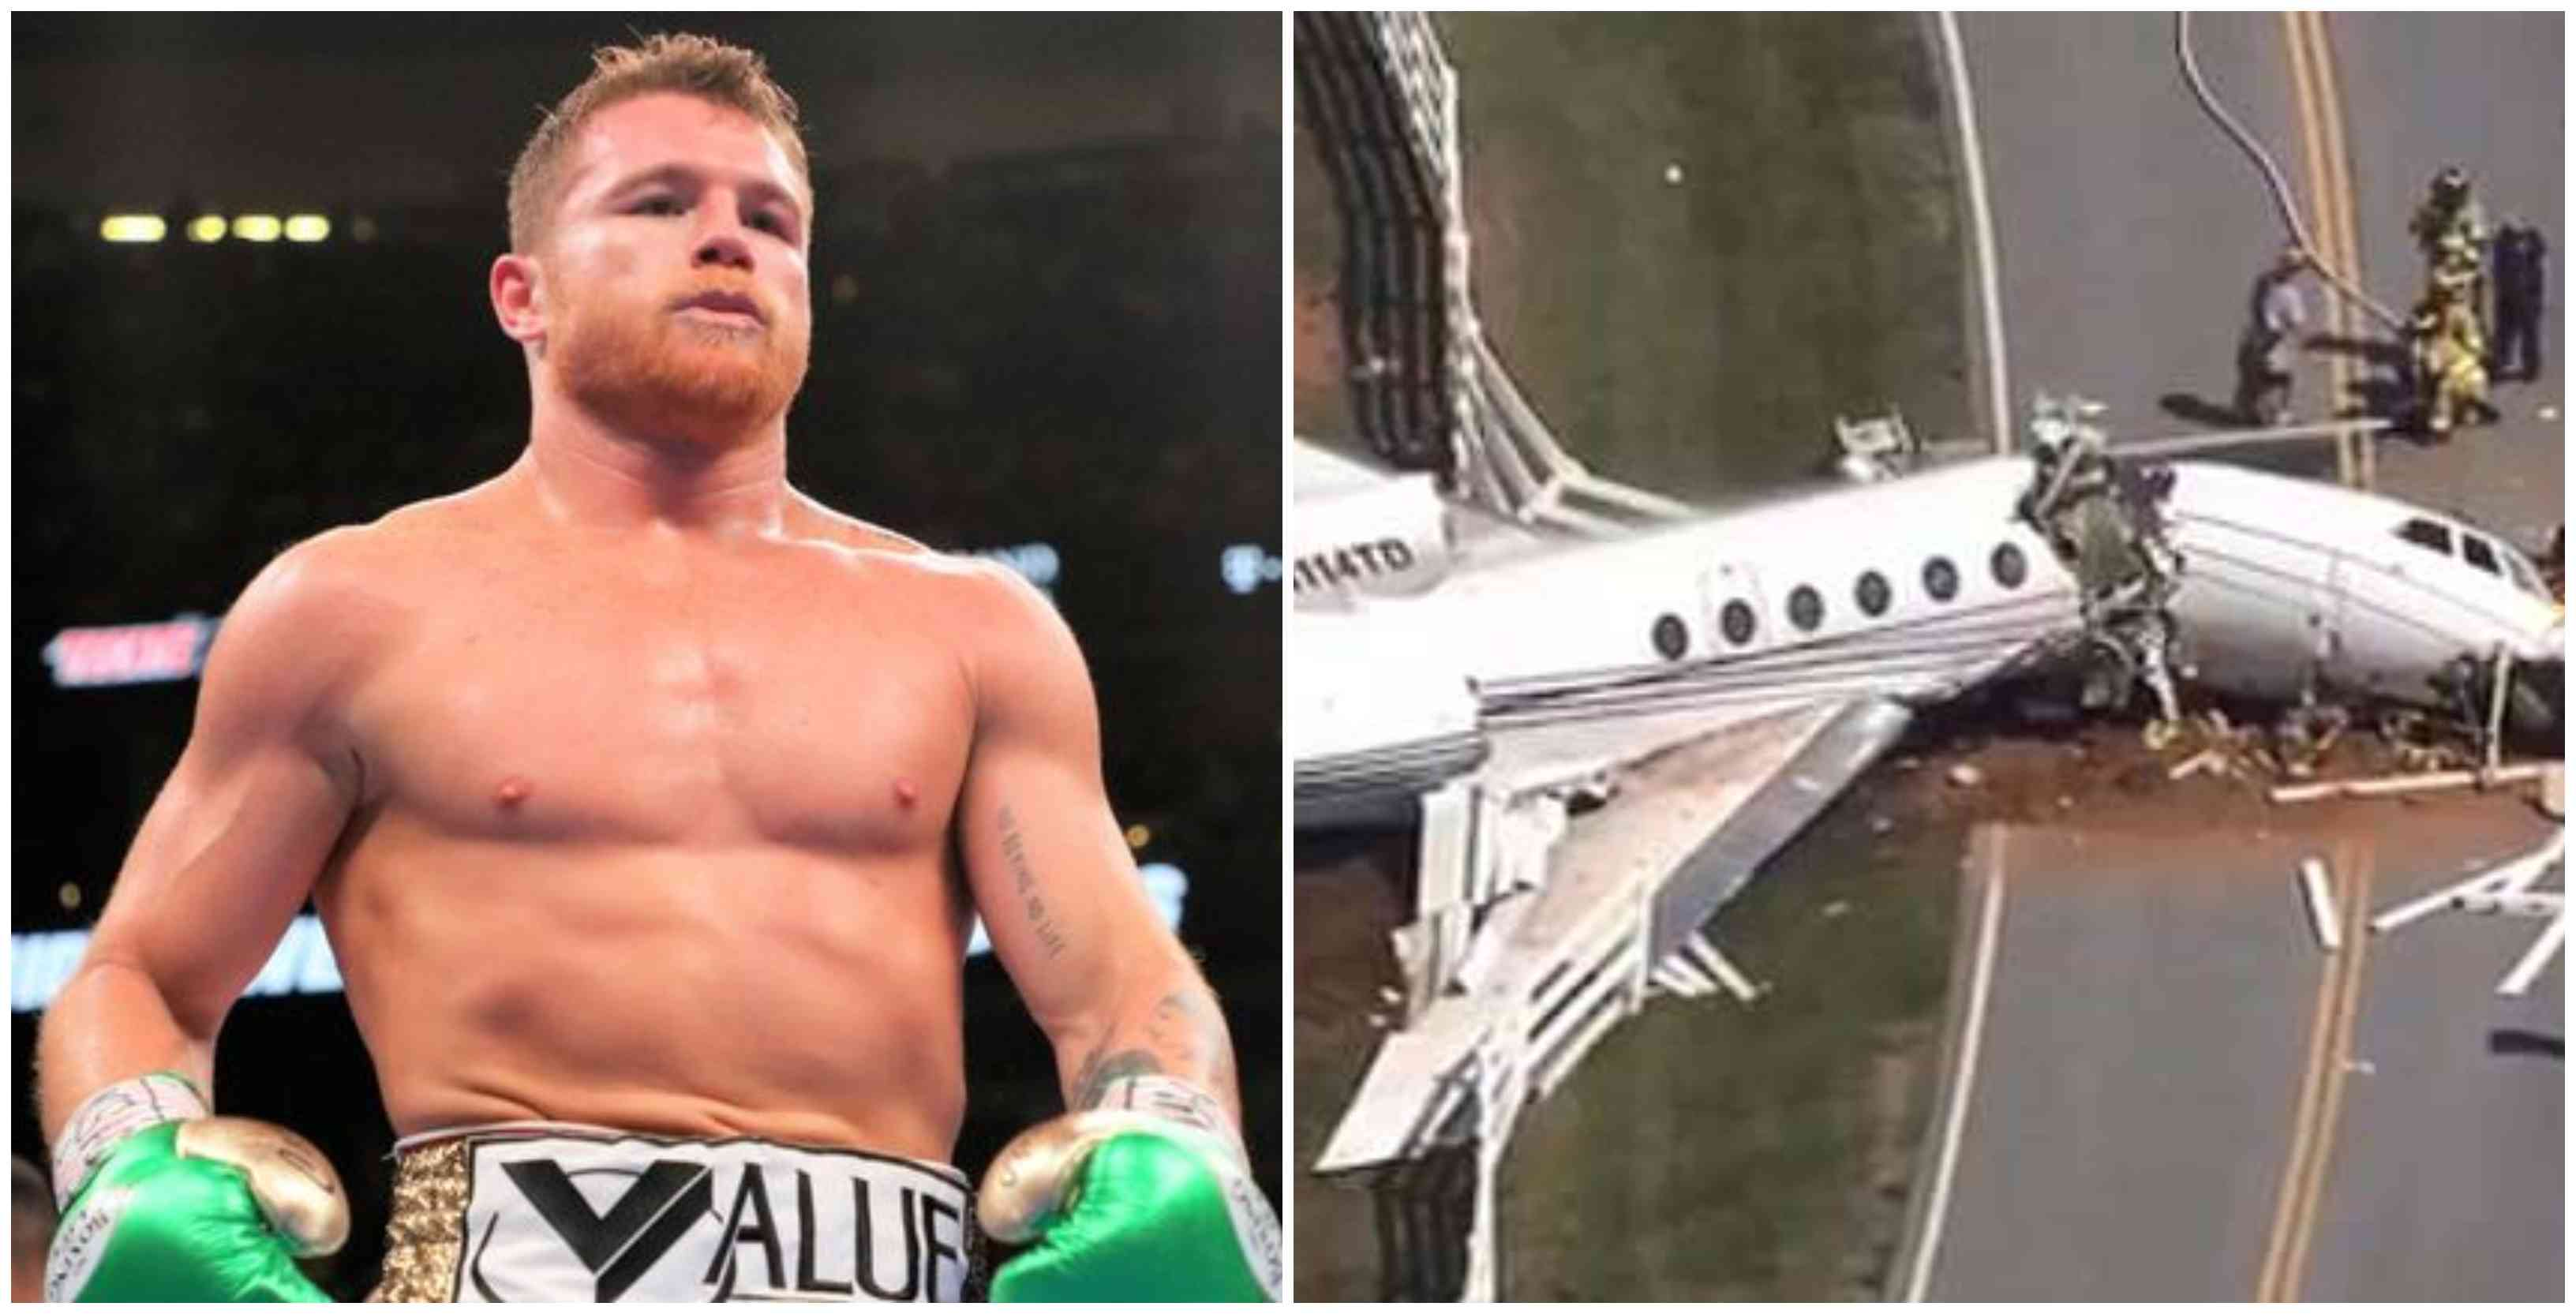 14 Boxing fans killed in a plane crash in Mexico carrying them home from Canelo vs Jacobs fight - Canelo